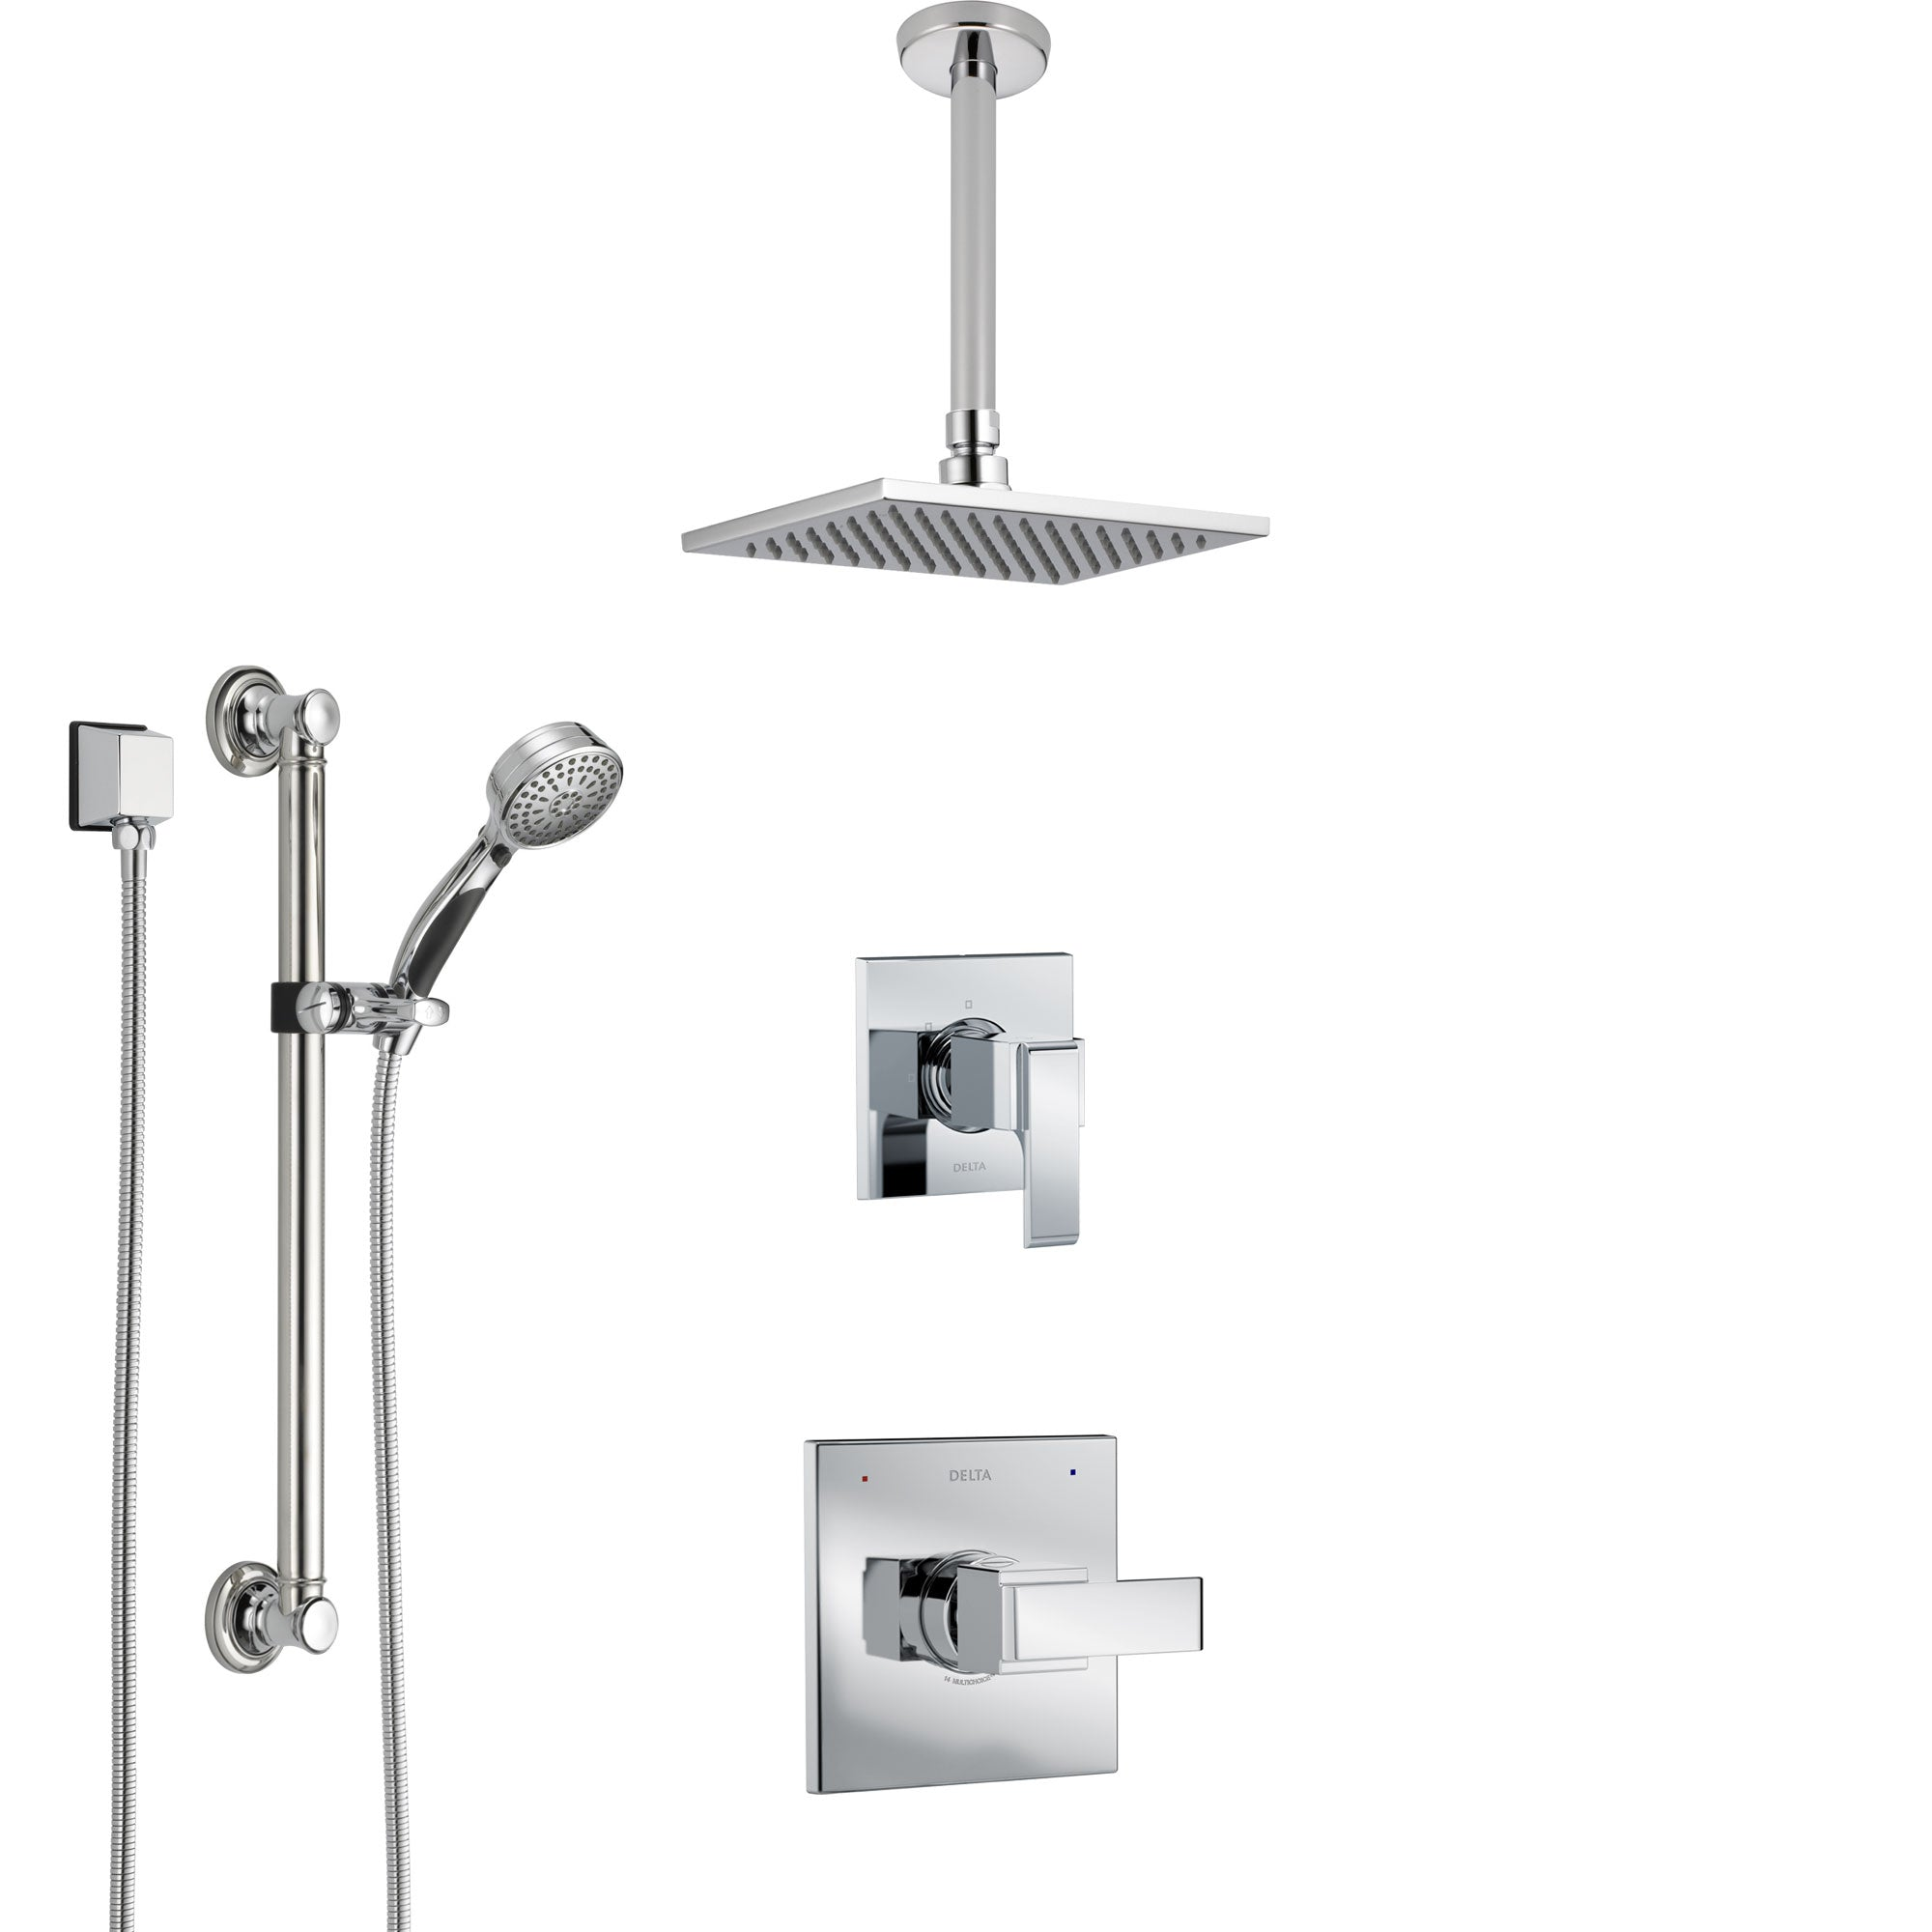 Delta Ara Chrome Finish Shower System with Control Handle, 3-Setting Diverter, Ceiling Mount Showerhead, and Hand Shower with Grab Bar SS14671